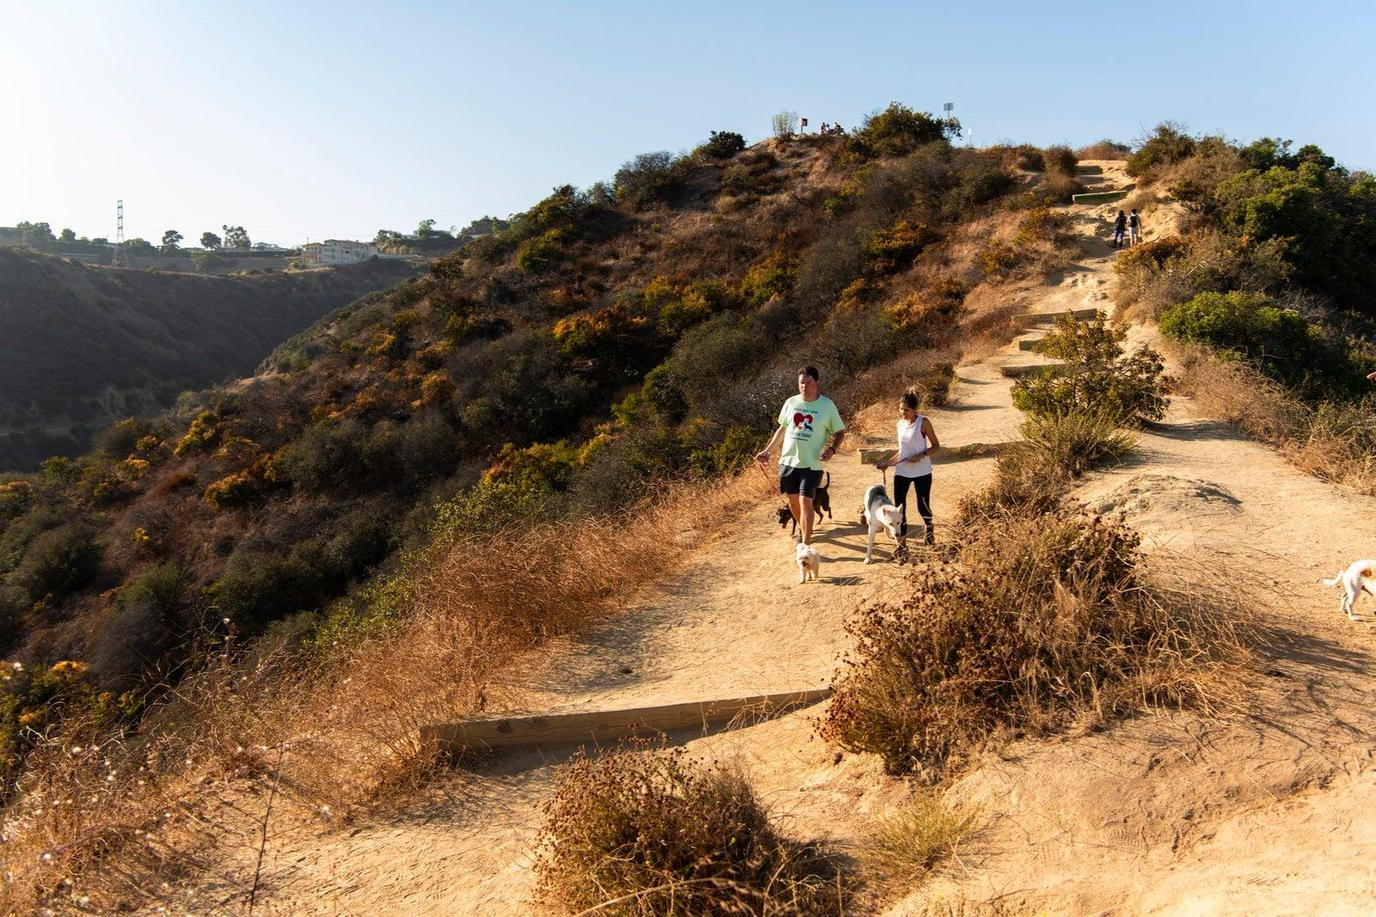 A Couple Hikes Through Runyon Canyon During With a Rescue Dog During Pet-Friendly Airbnb Experience.